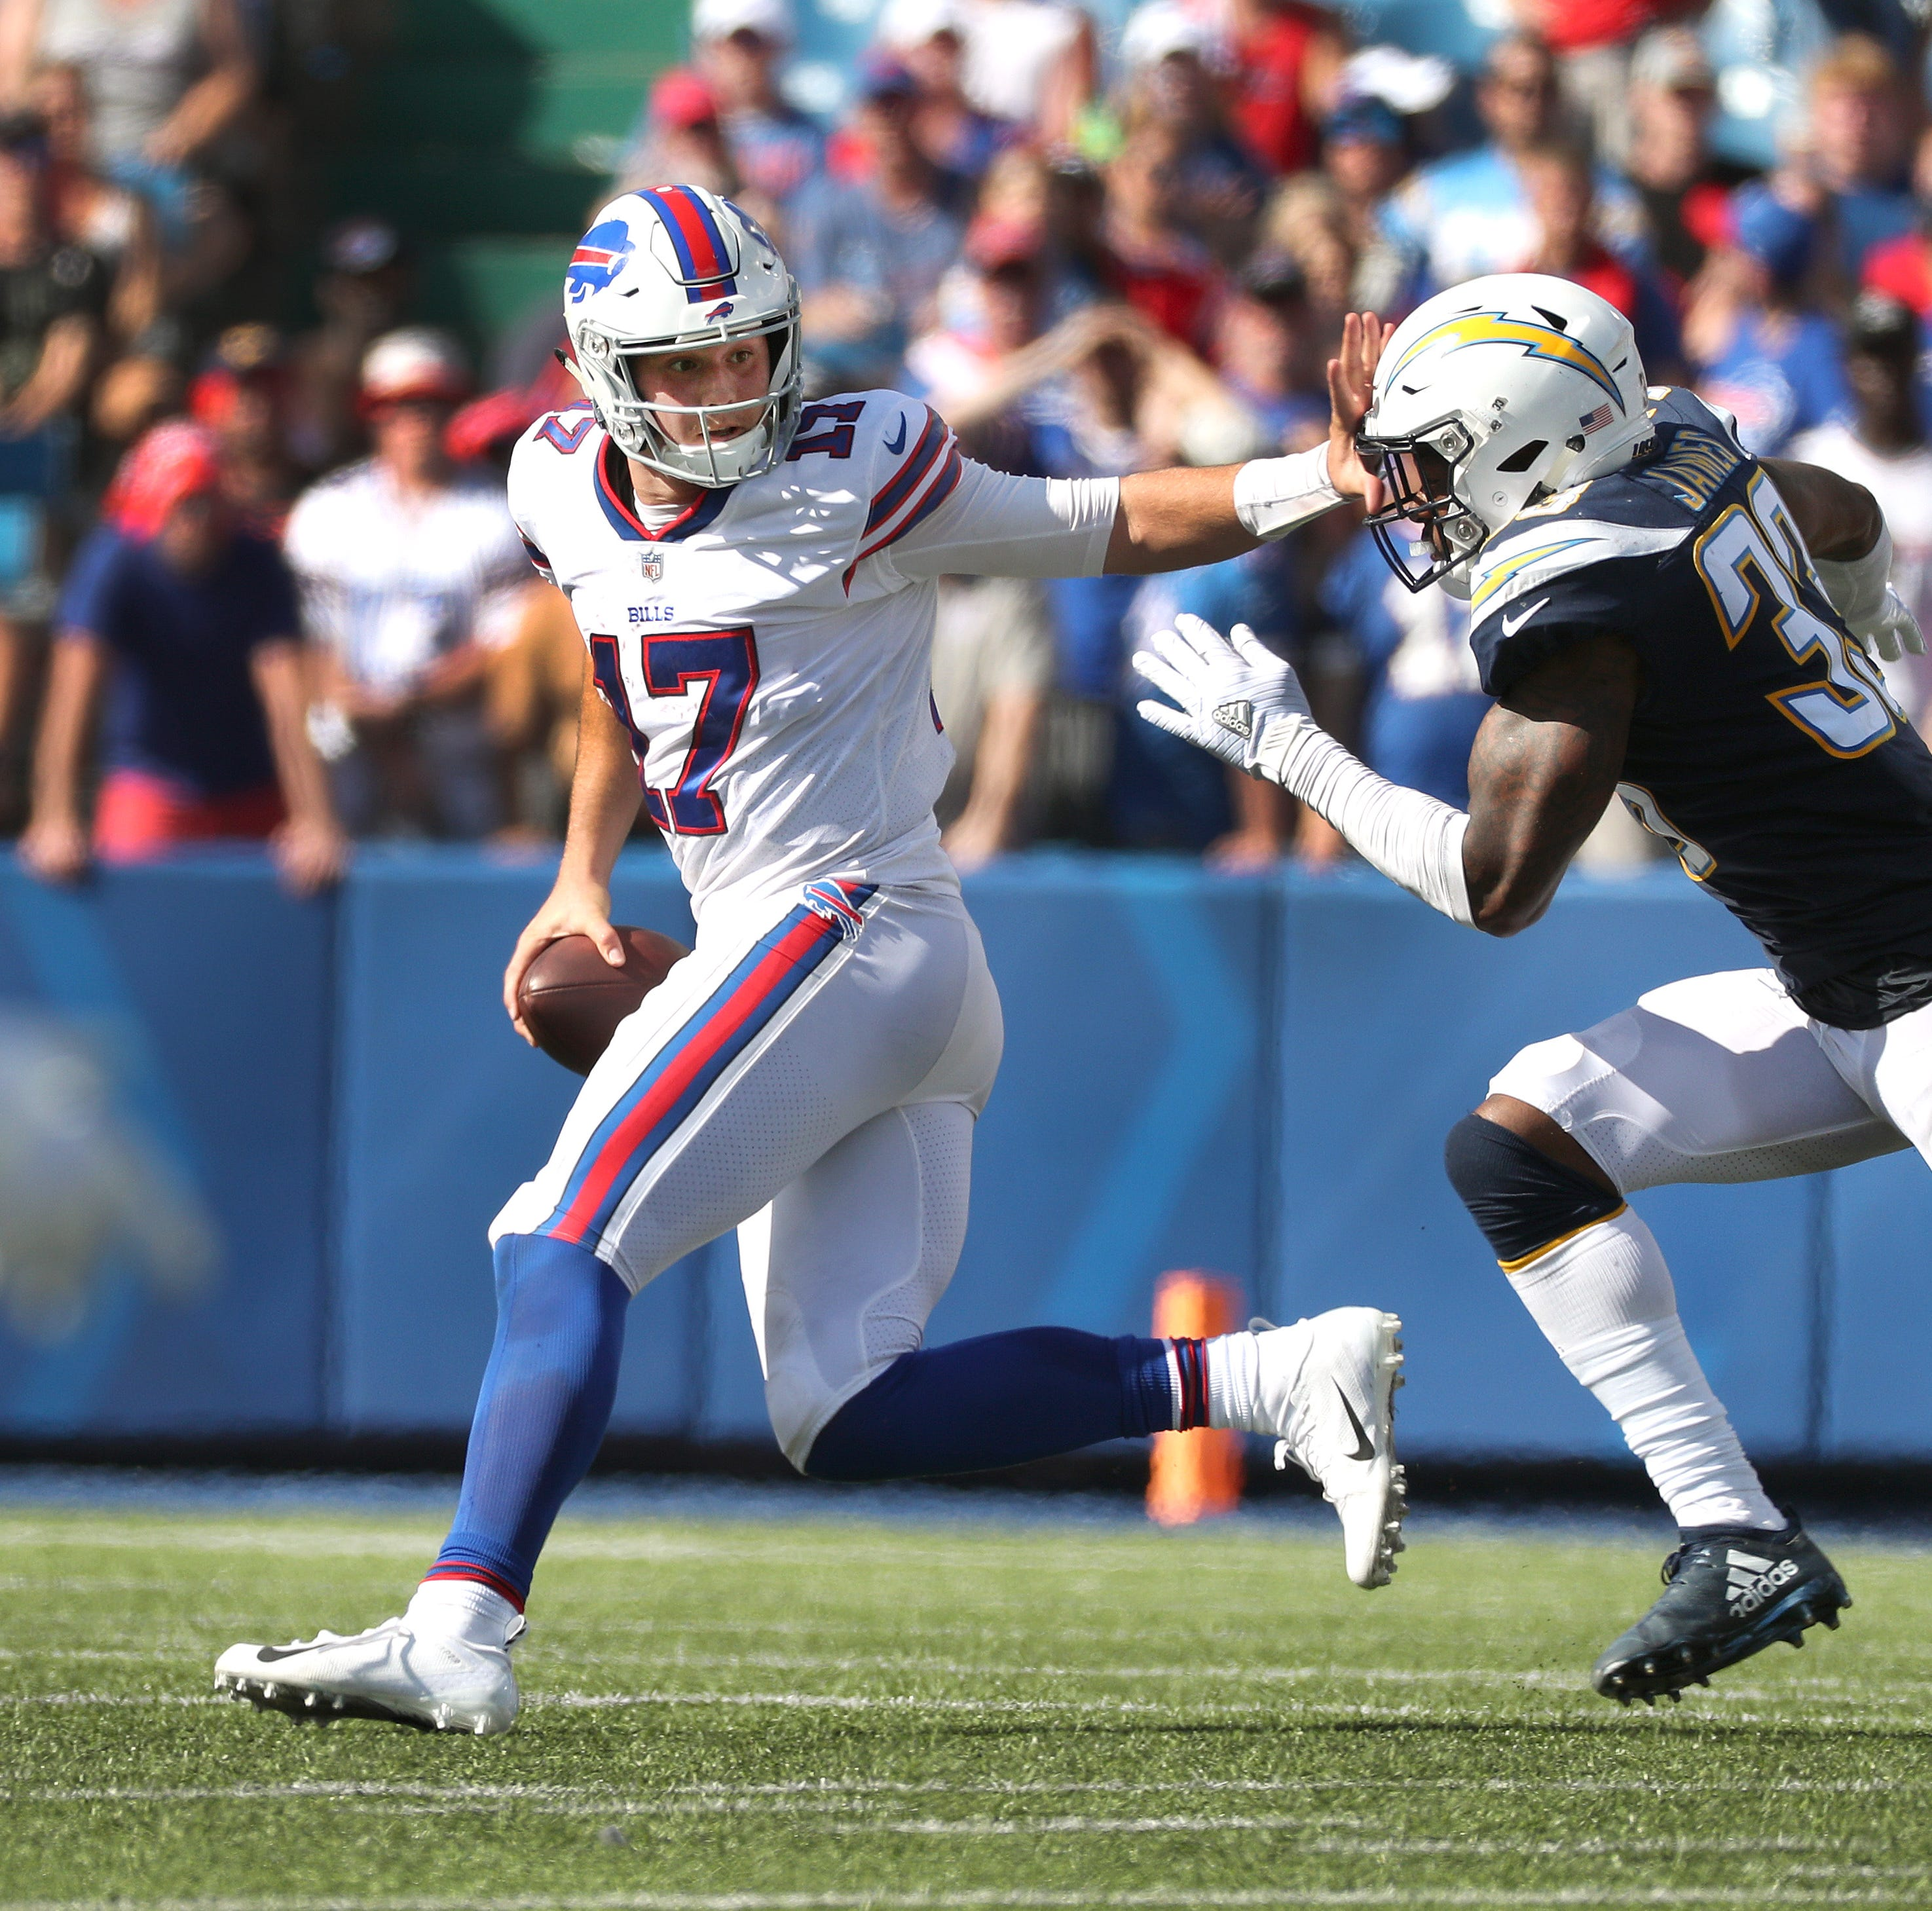 Roth: Allen wasn't dreaming, playing quarterback in the NFL is one tough job